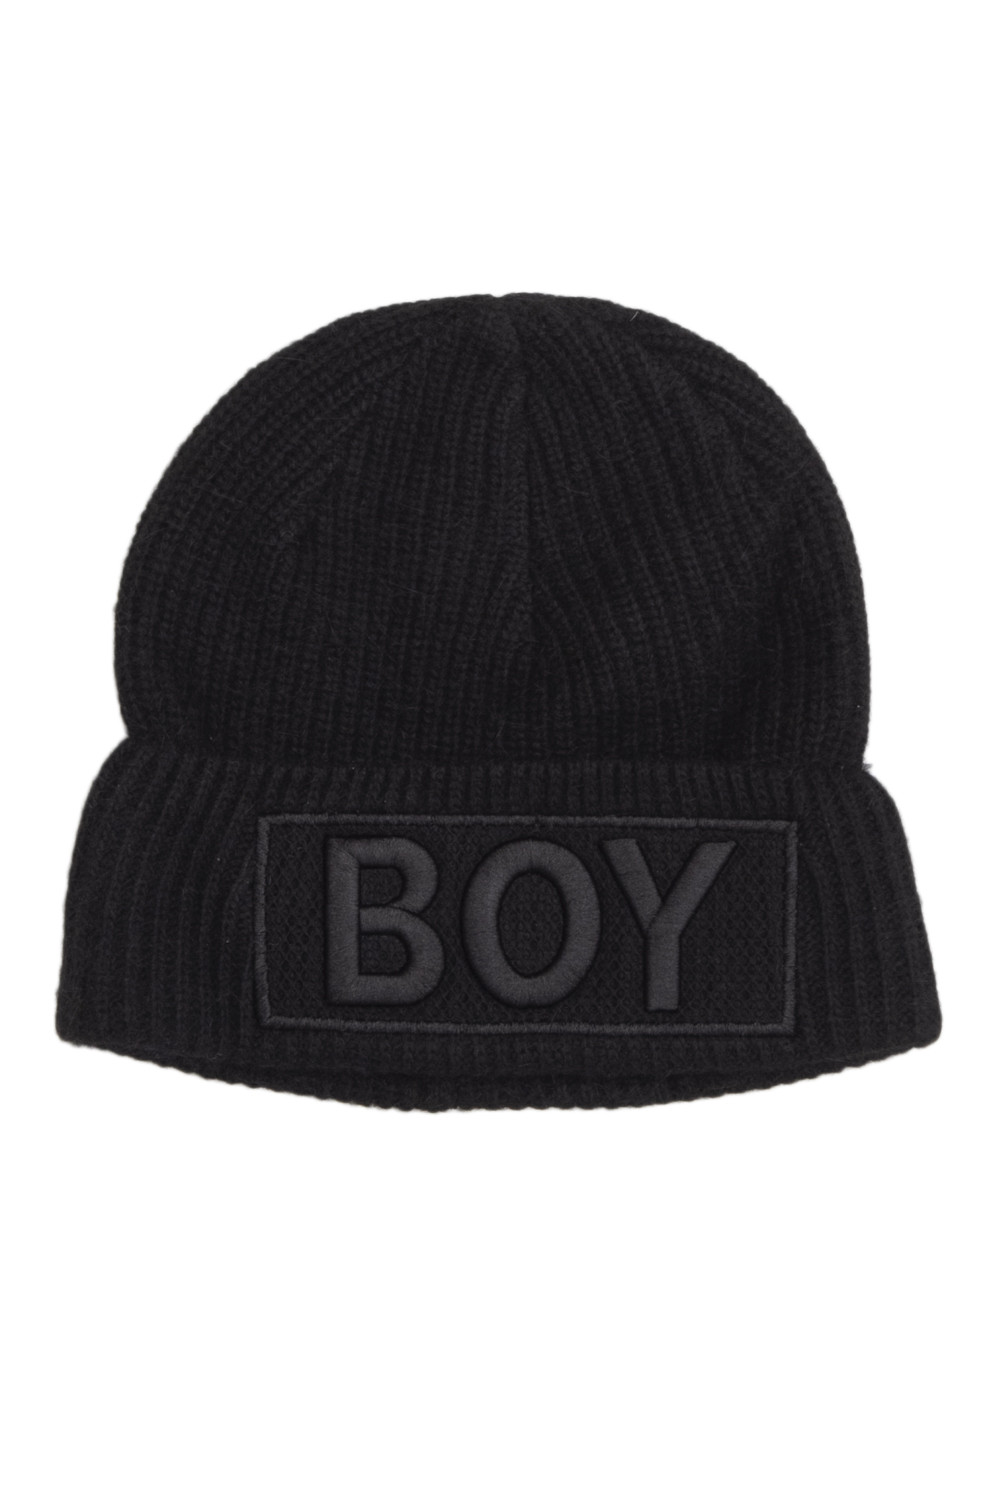 boy londonMarchio: Boy London; Genere: Donna; Tipologia: Ca…